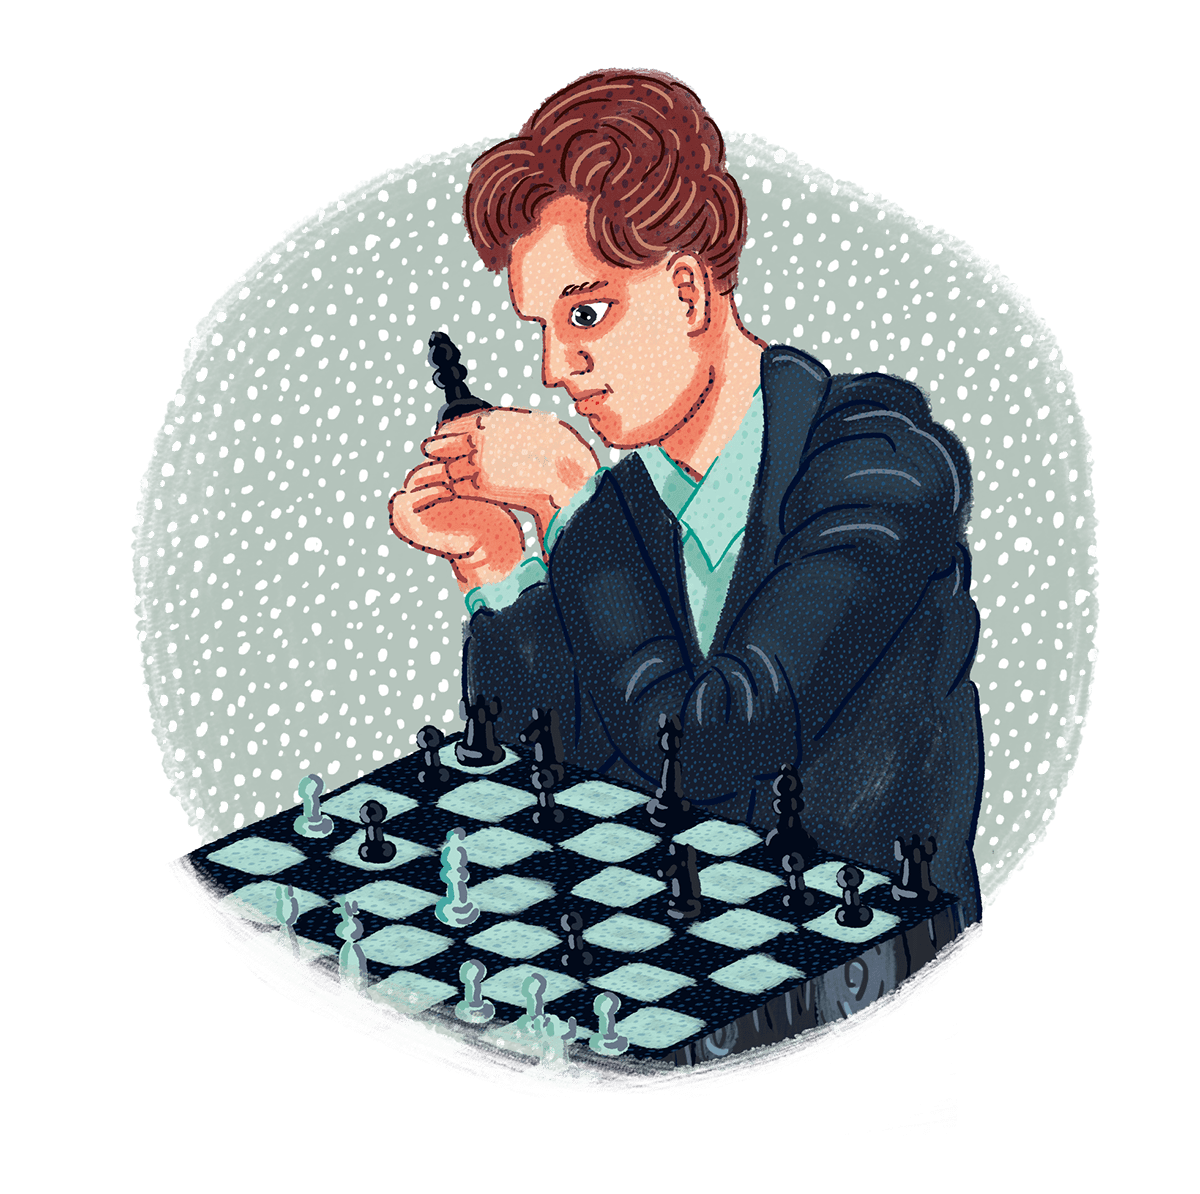 illustrations Personality Type Profiles Personality Types psychology